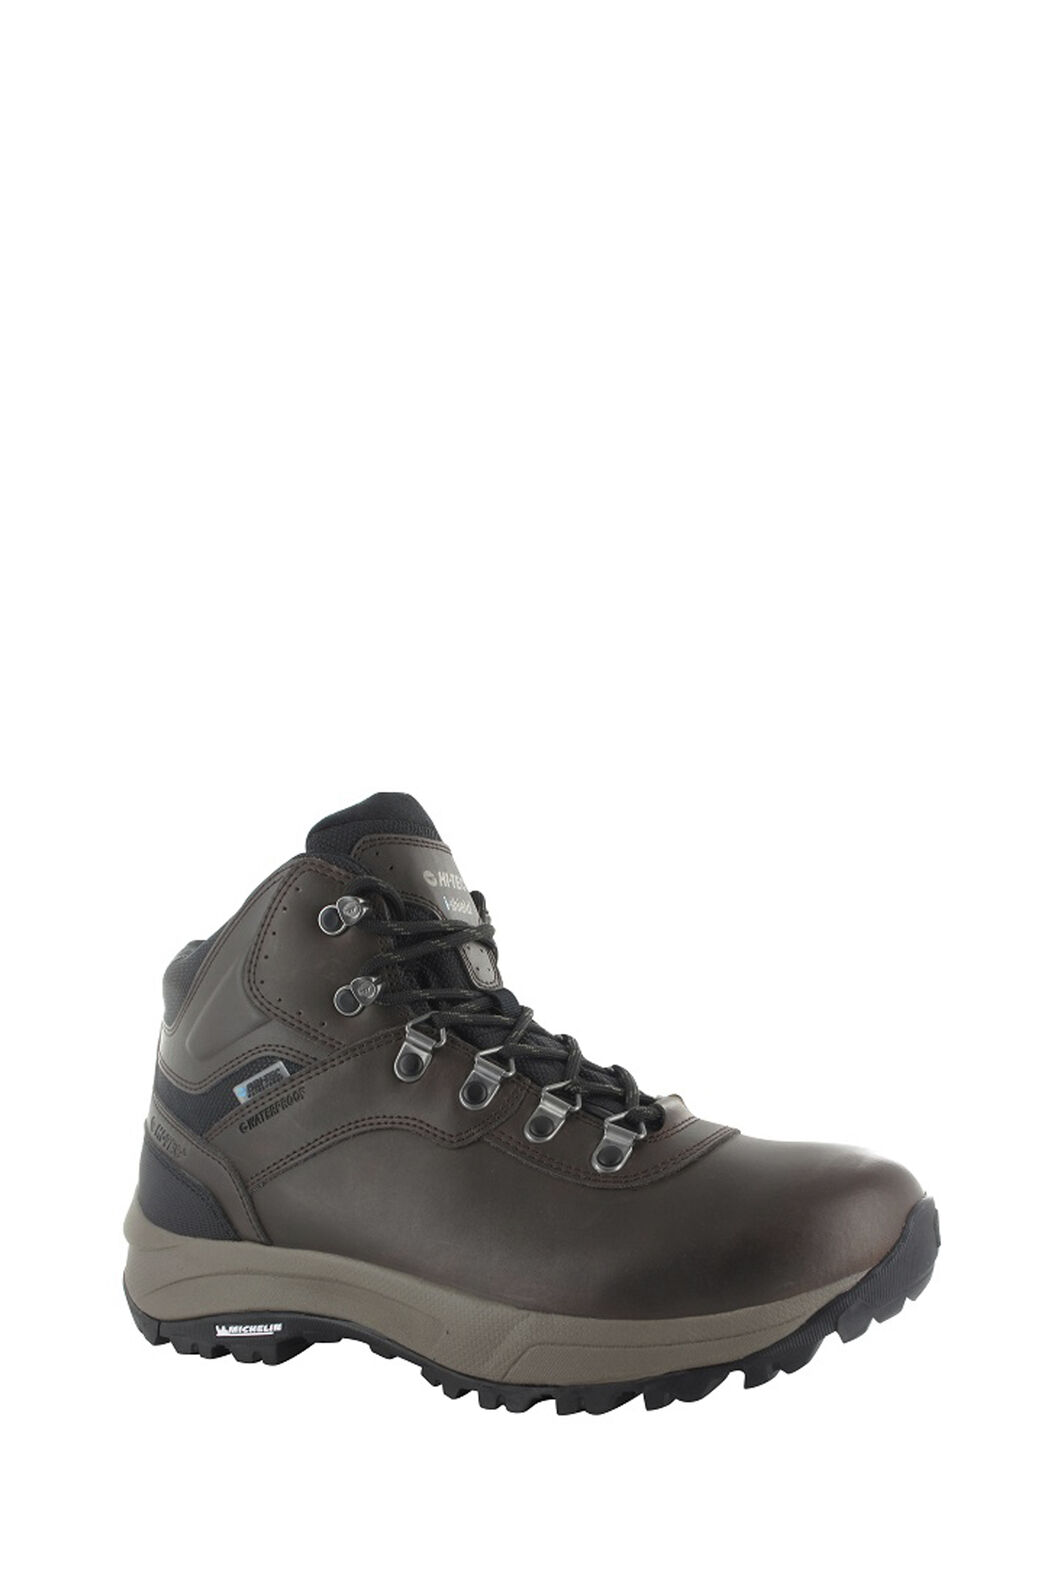 Hi-Tec Altitude VI I WP Hiking Boots — Men's, Dark Chocolate, hi-res